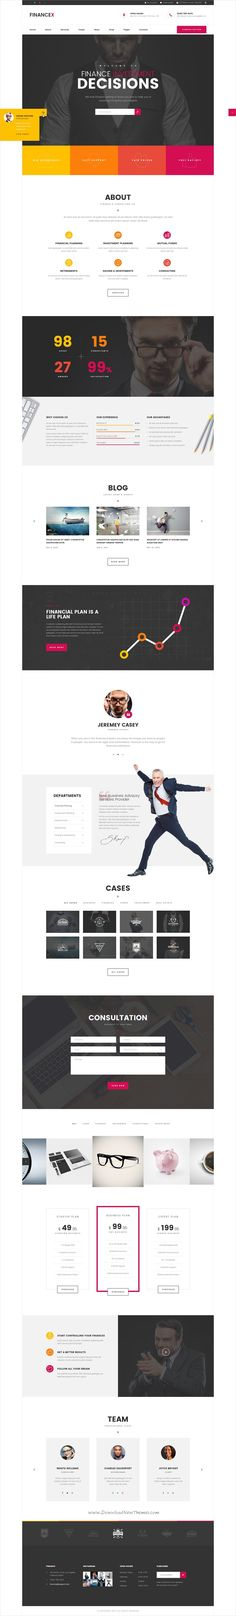 FinanceX is a creative and modern design #PSD template for corporate, #finance, consulting or #business organizations website with 27 layered PSD files download now➩ https://themeforest.net/item/financex-corporate-finance-consultants-psd-template/19335162?ref=Datasata